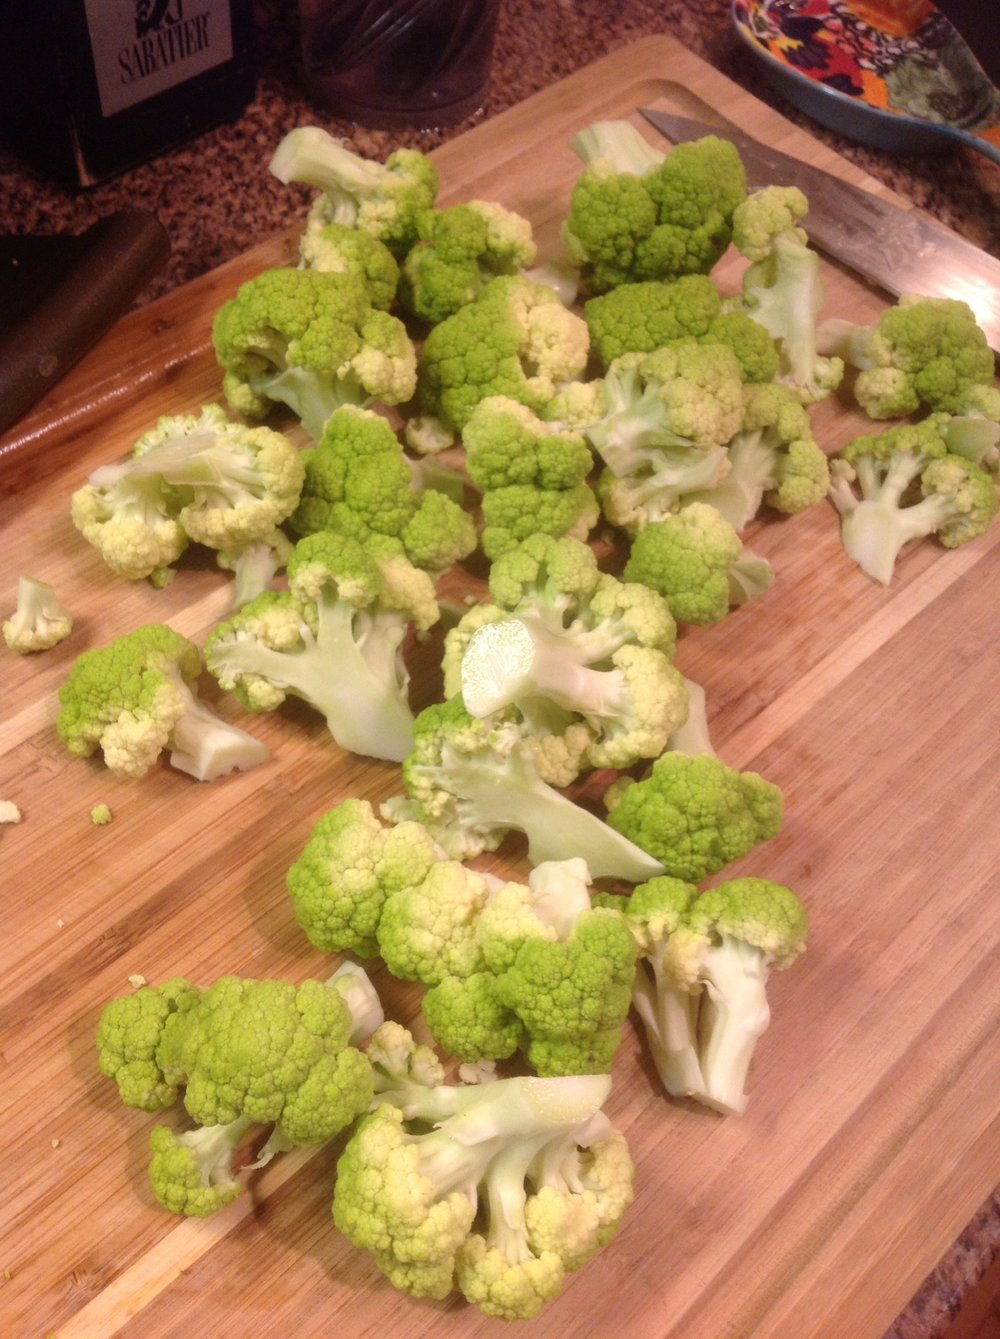 Chef's Tip: Green Cauliflower or Romanesco is naturally a beautiful green color.  That's due to the healthy antioxidants in the vegetable.  These phytonutrients are both nutritious and add gorgeous color.  Eat the rainbow!